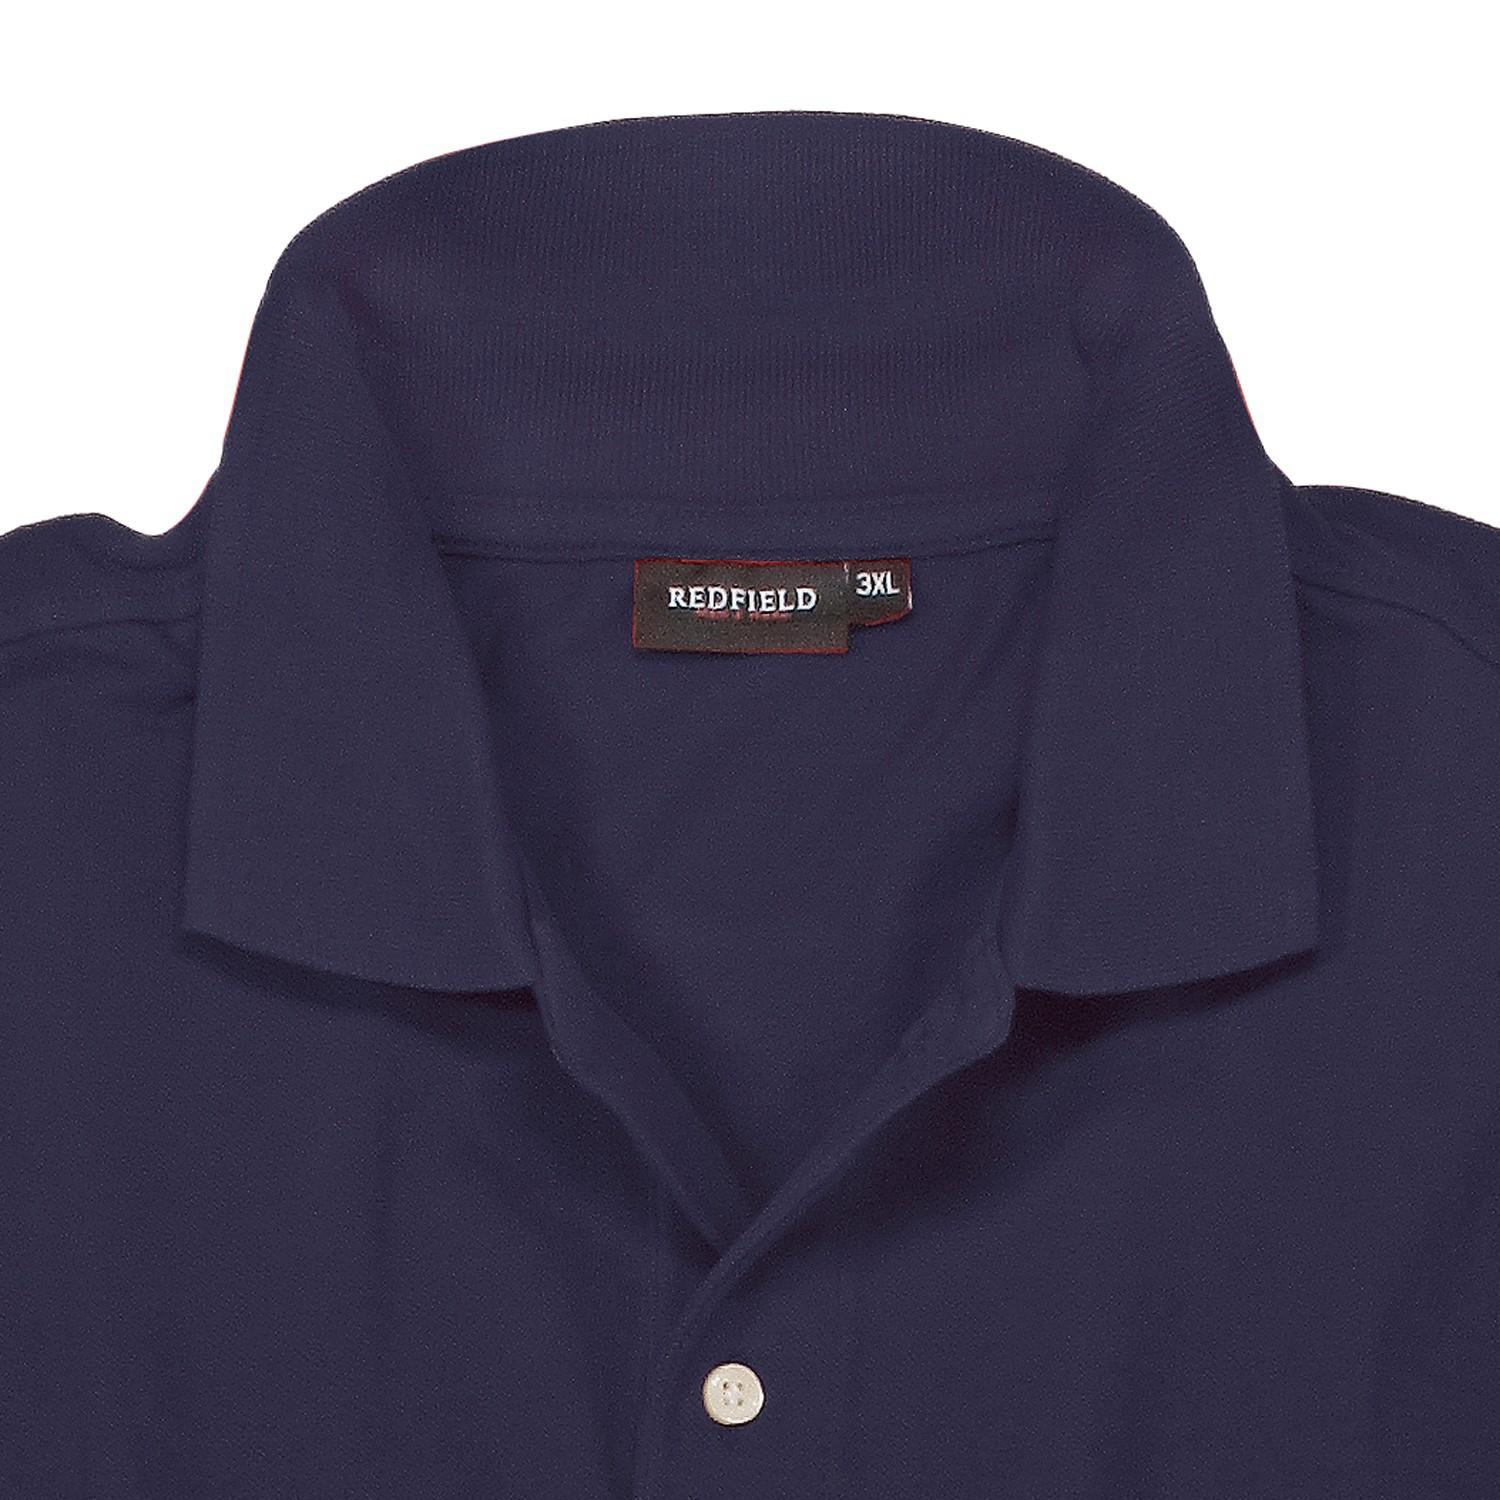 Detail Image to Polo shirt in dark blue by Redfield in extra large sizes until 8XL